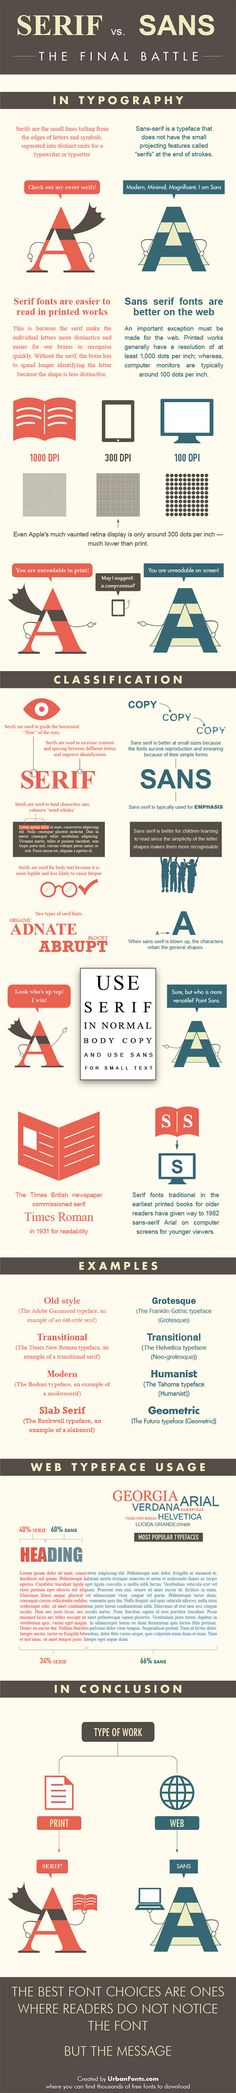 Serif vs Sans: The Final Battle In Typography [Infographic] | inspirationfeed.com